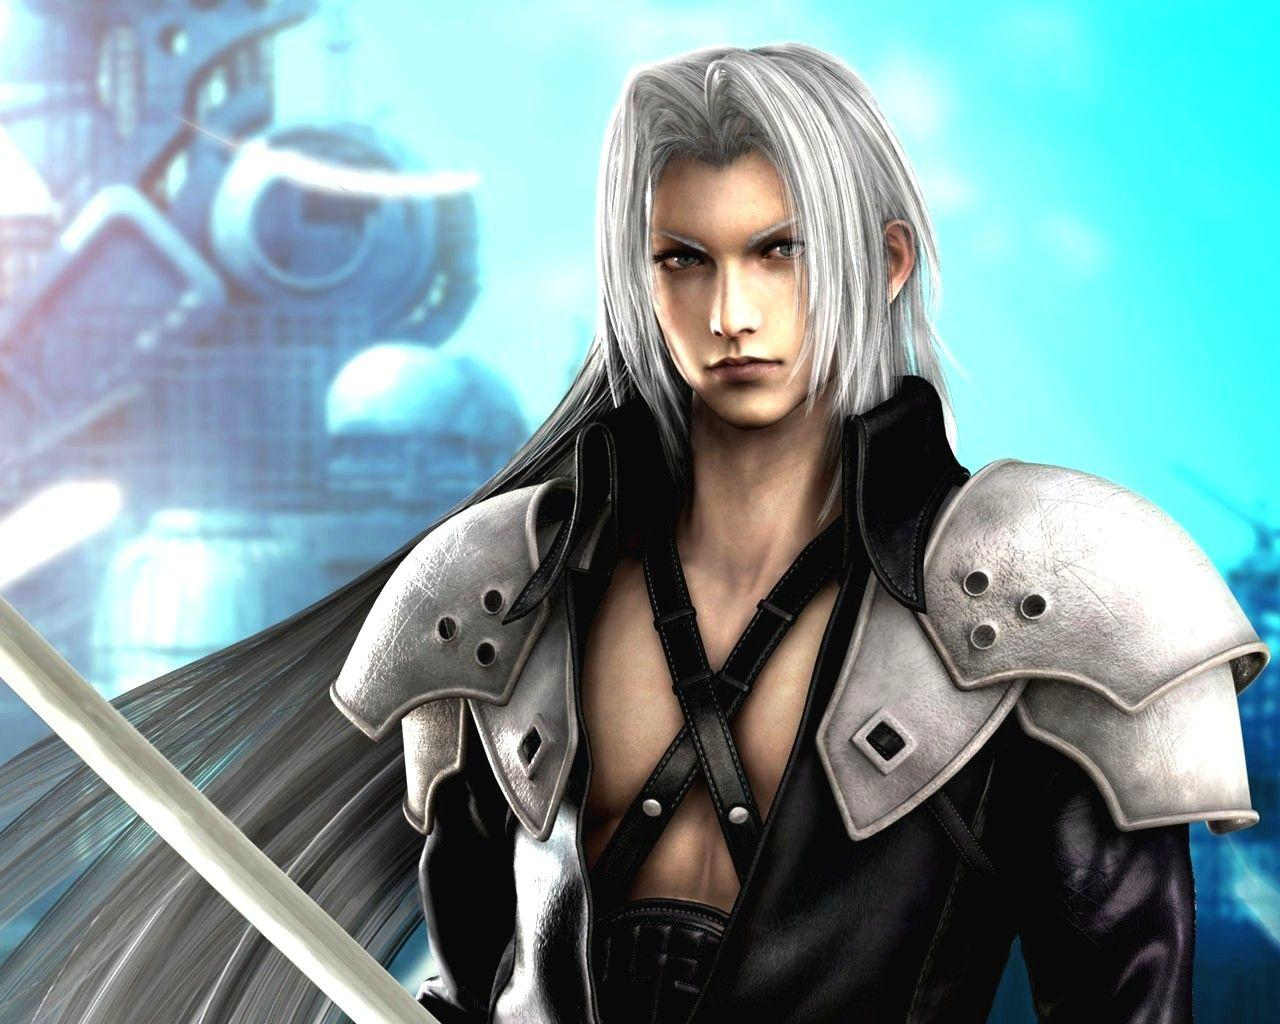 Final Fantasy 7 Sephiroth Wallpapers Wallpaper Cave